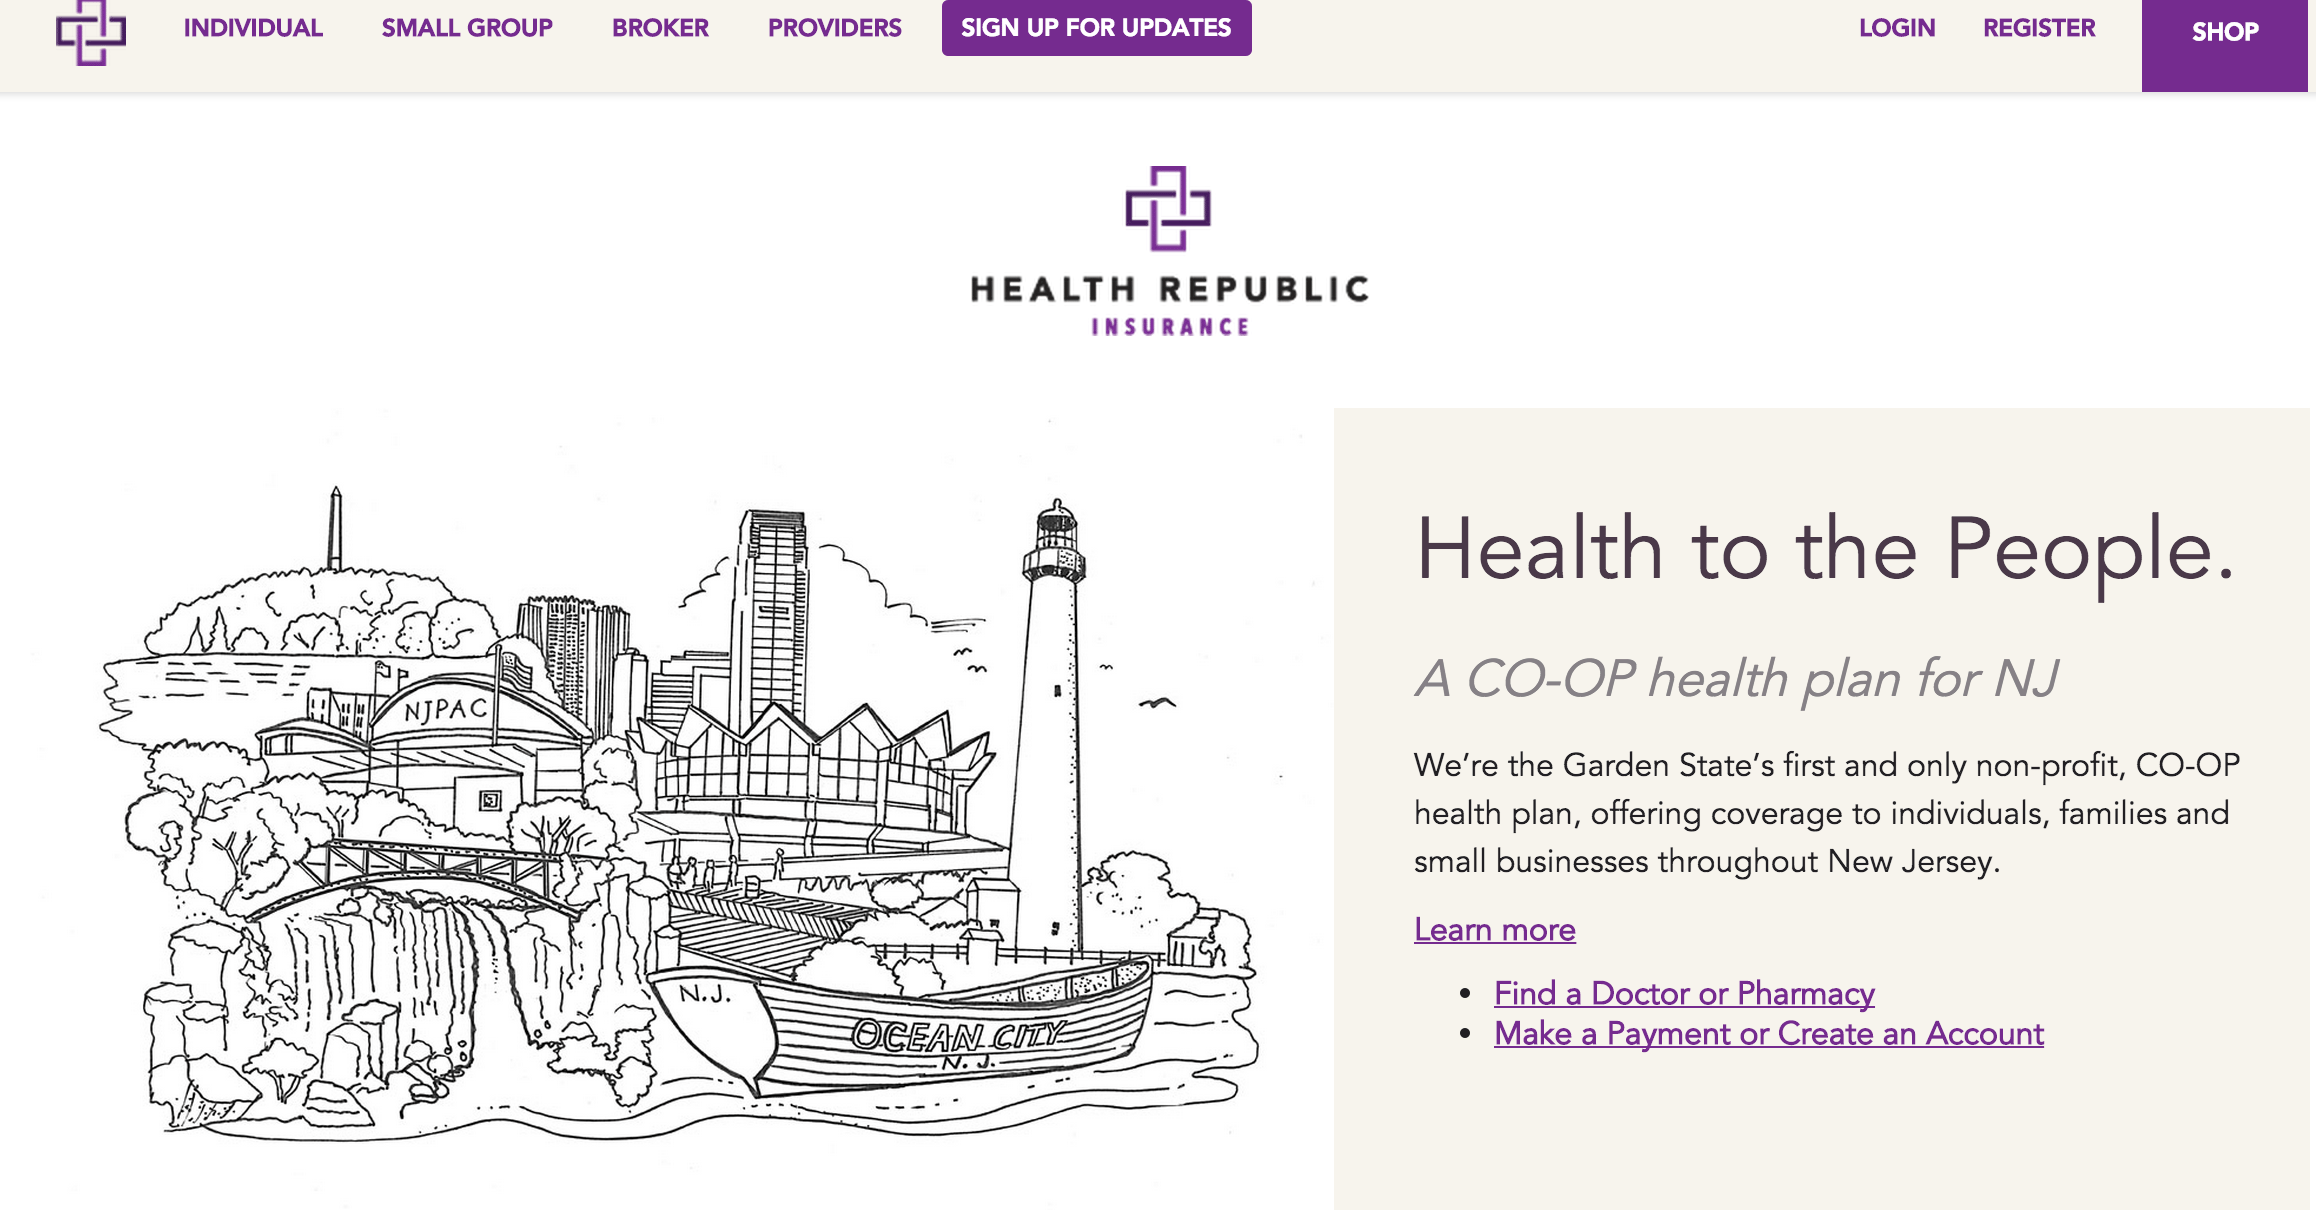 Health IT startup provides CO-OPS, regional insurers customer experience insights